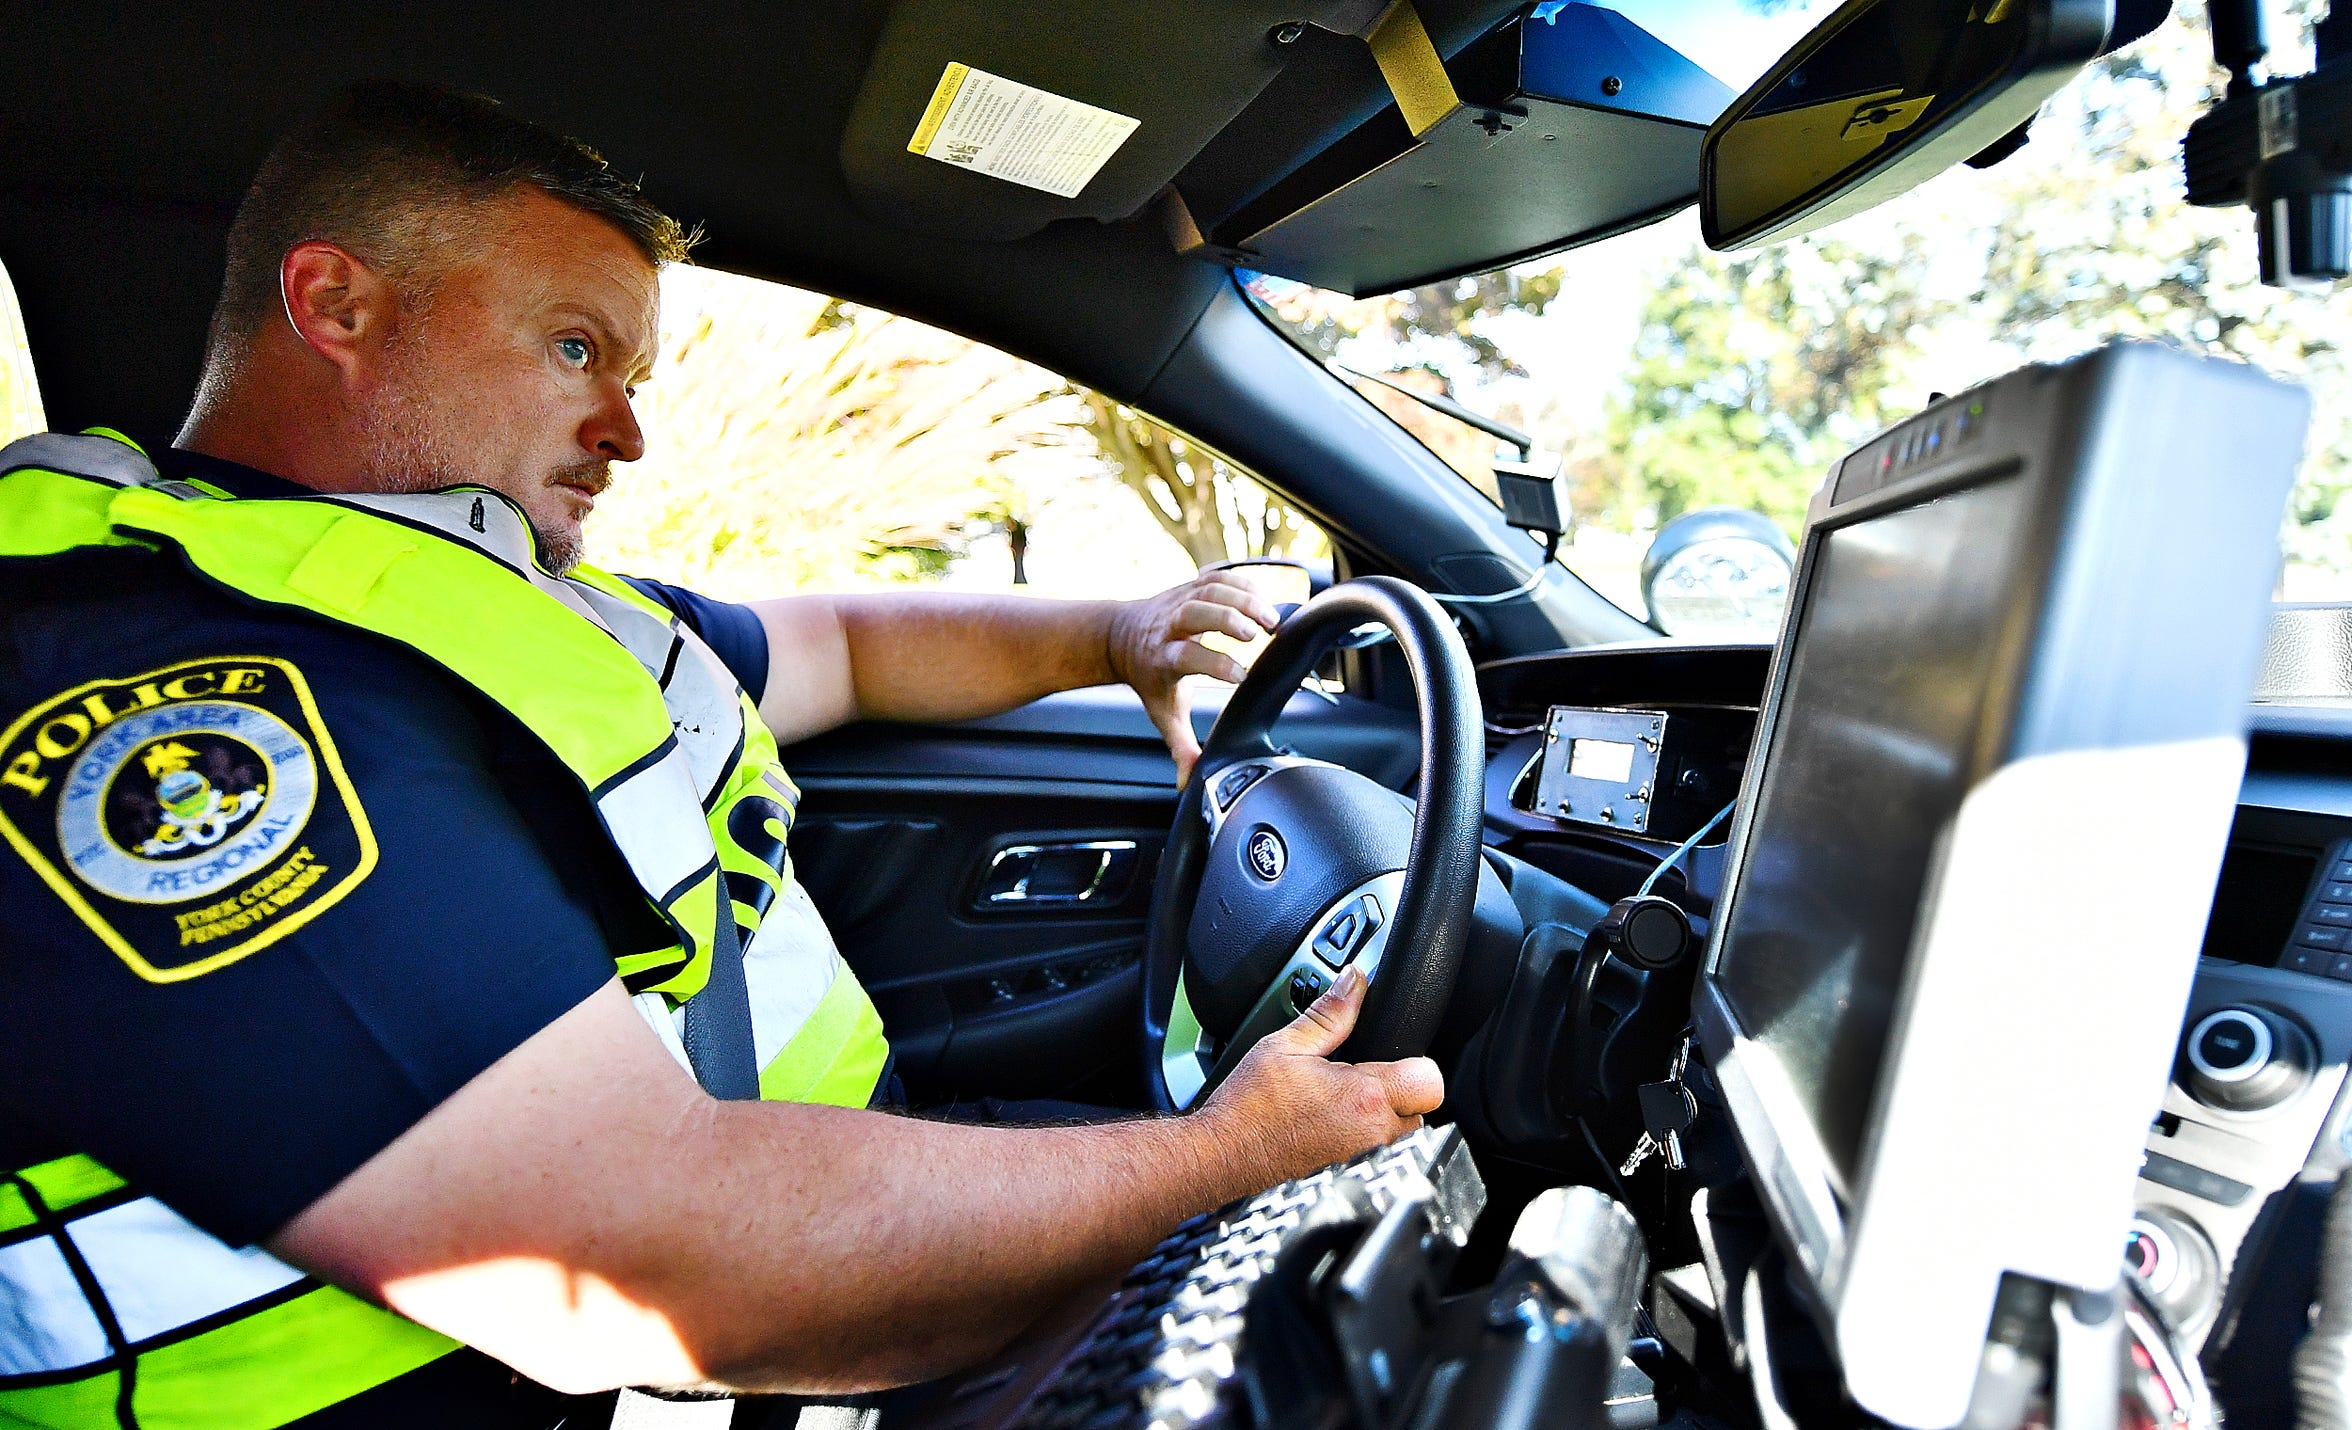 York Area Regional Police Officer James Hess Jr. monitors traffic along Cape Horn Road at Skylight Drive using ENRADD, a non radar speed detection device, in Windsor Township, Tuesday, Oct. 15, 2019. Hess says he once stopped a driver going 116 mph in the same location. Dawn J. Sagert photo